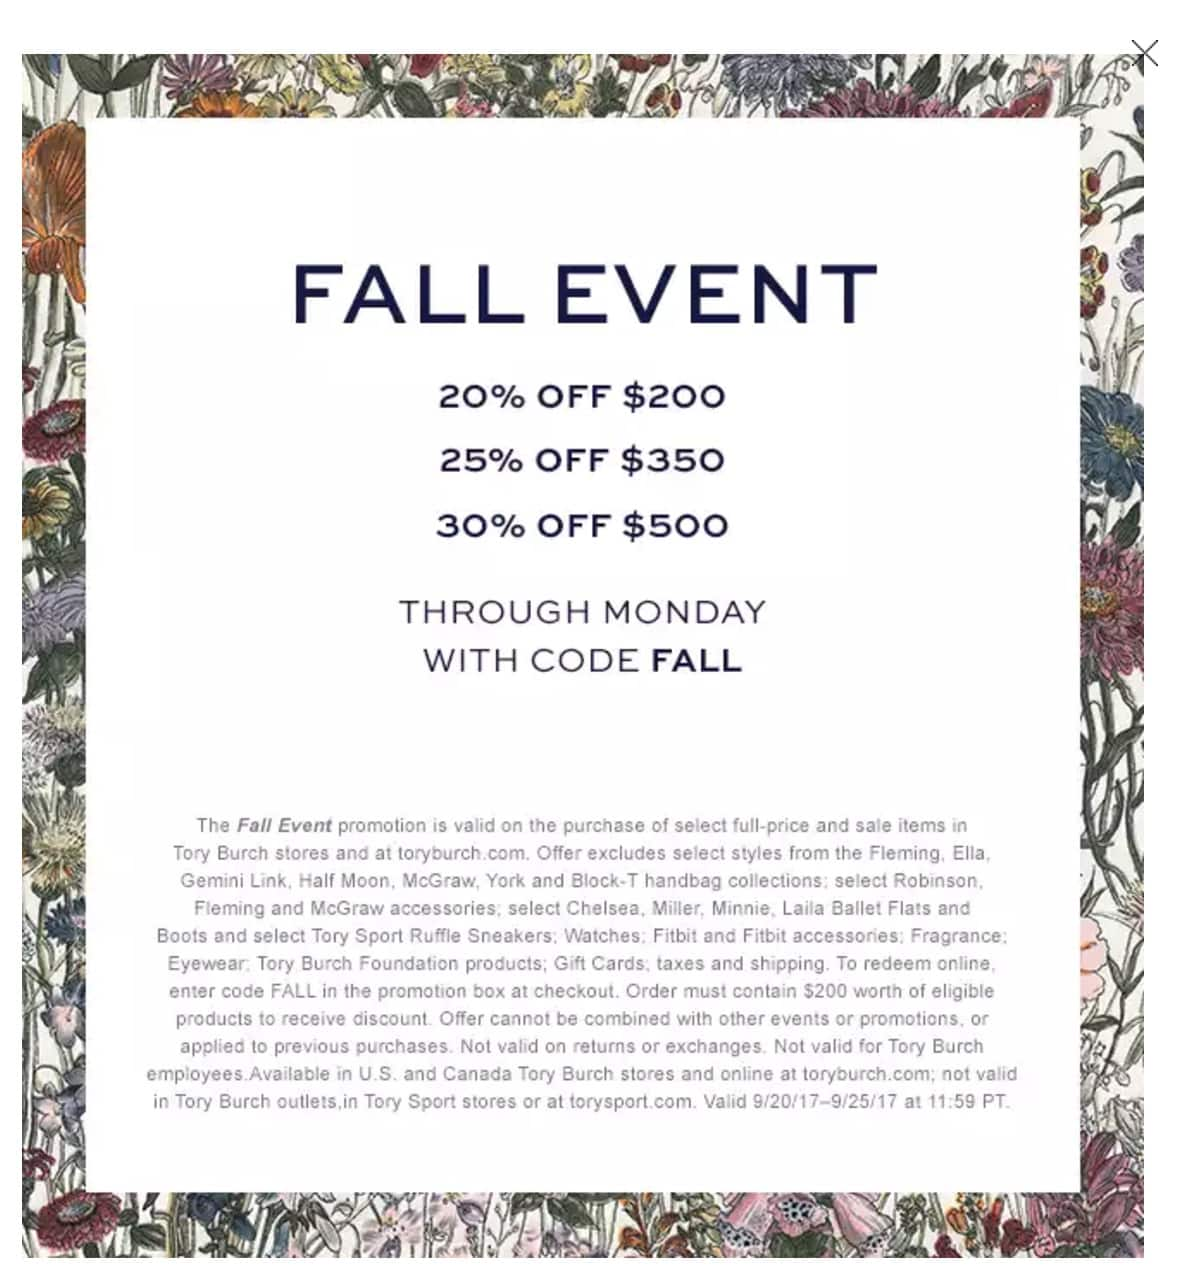 Tory Burch Fall Sale - 20% OFF $200 · 25% OFF $350 · 30% OFF $500